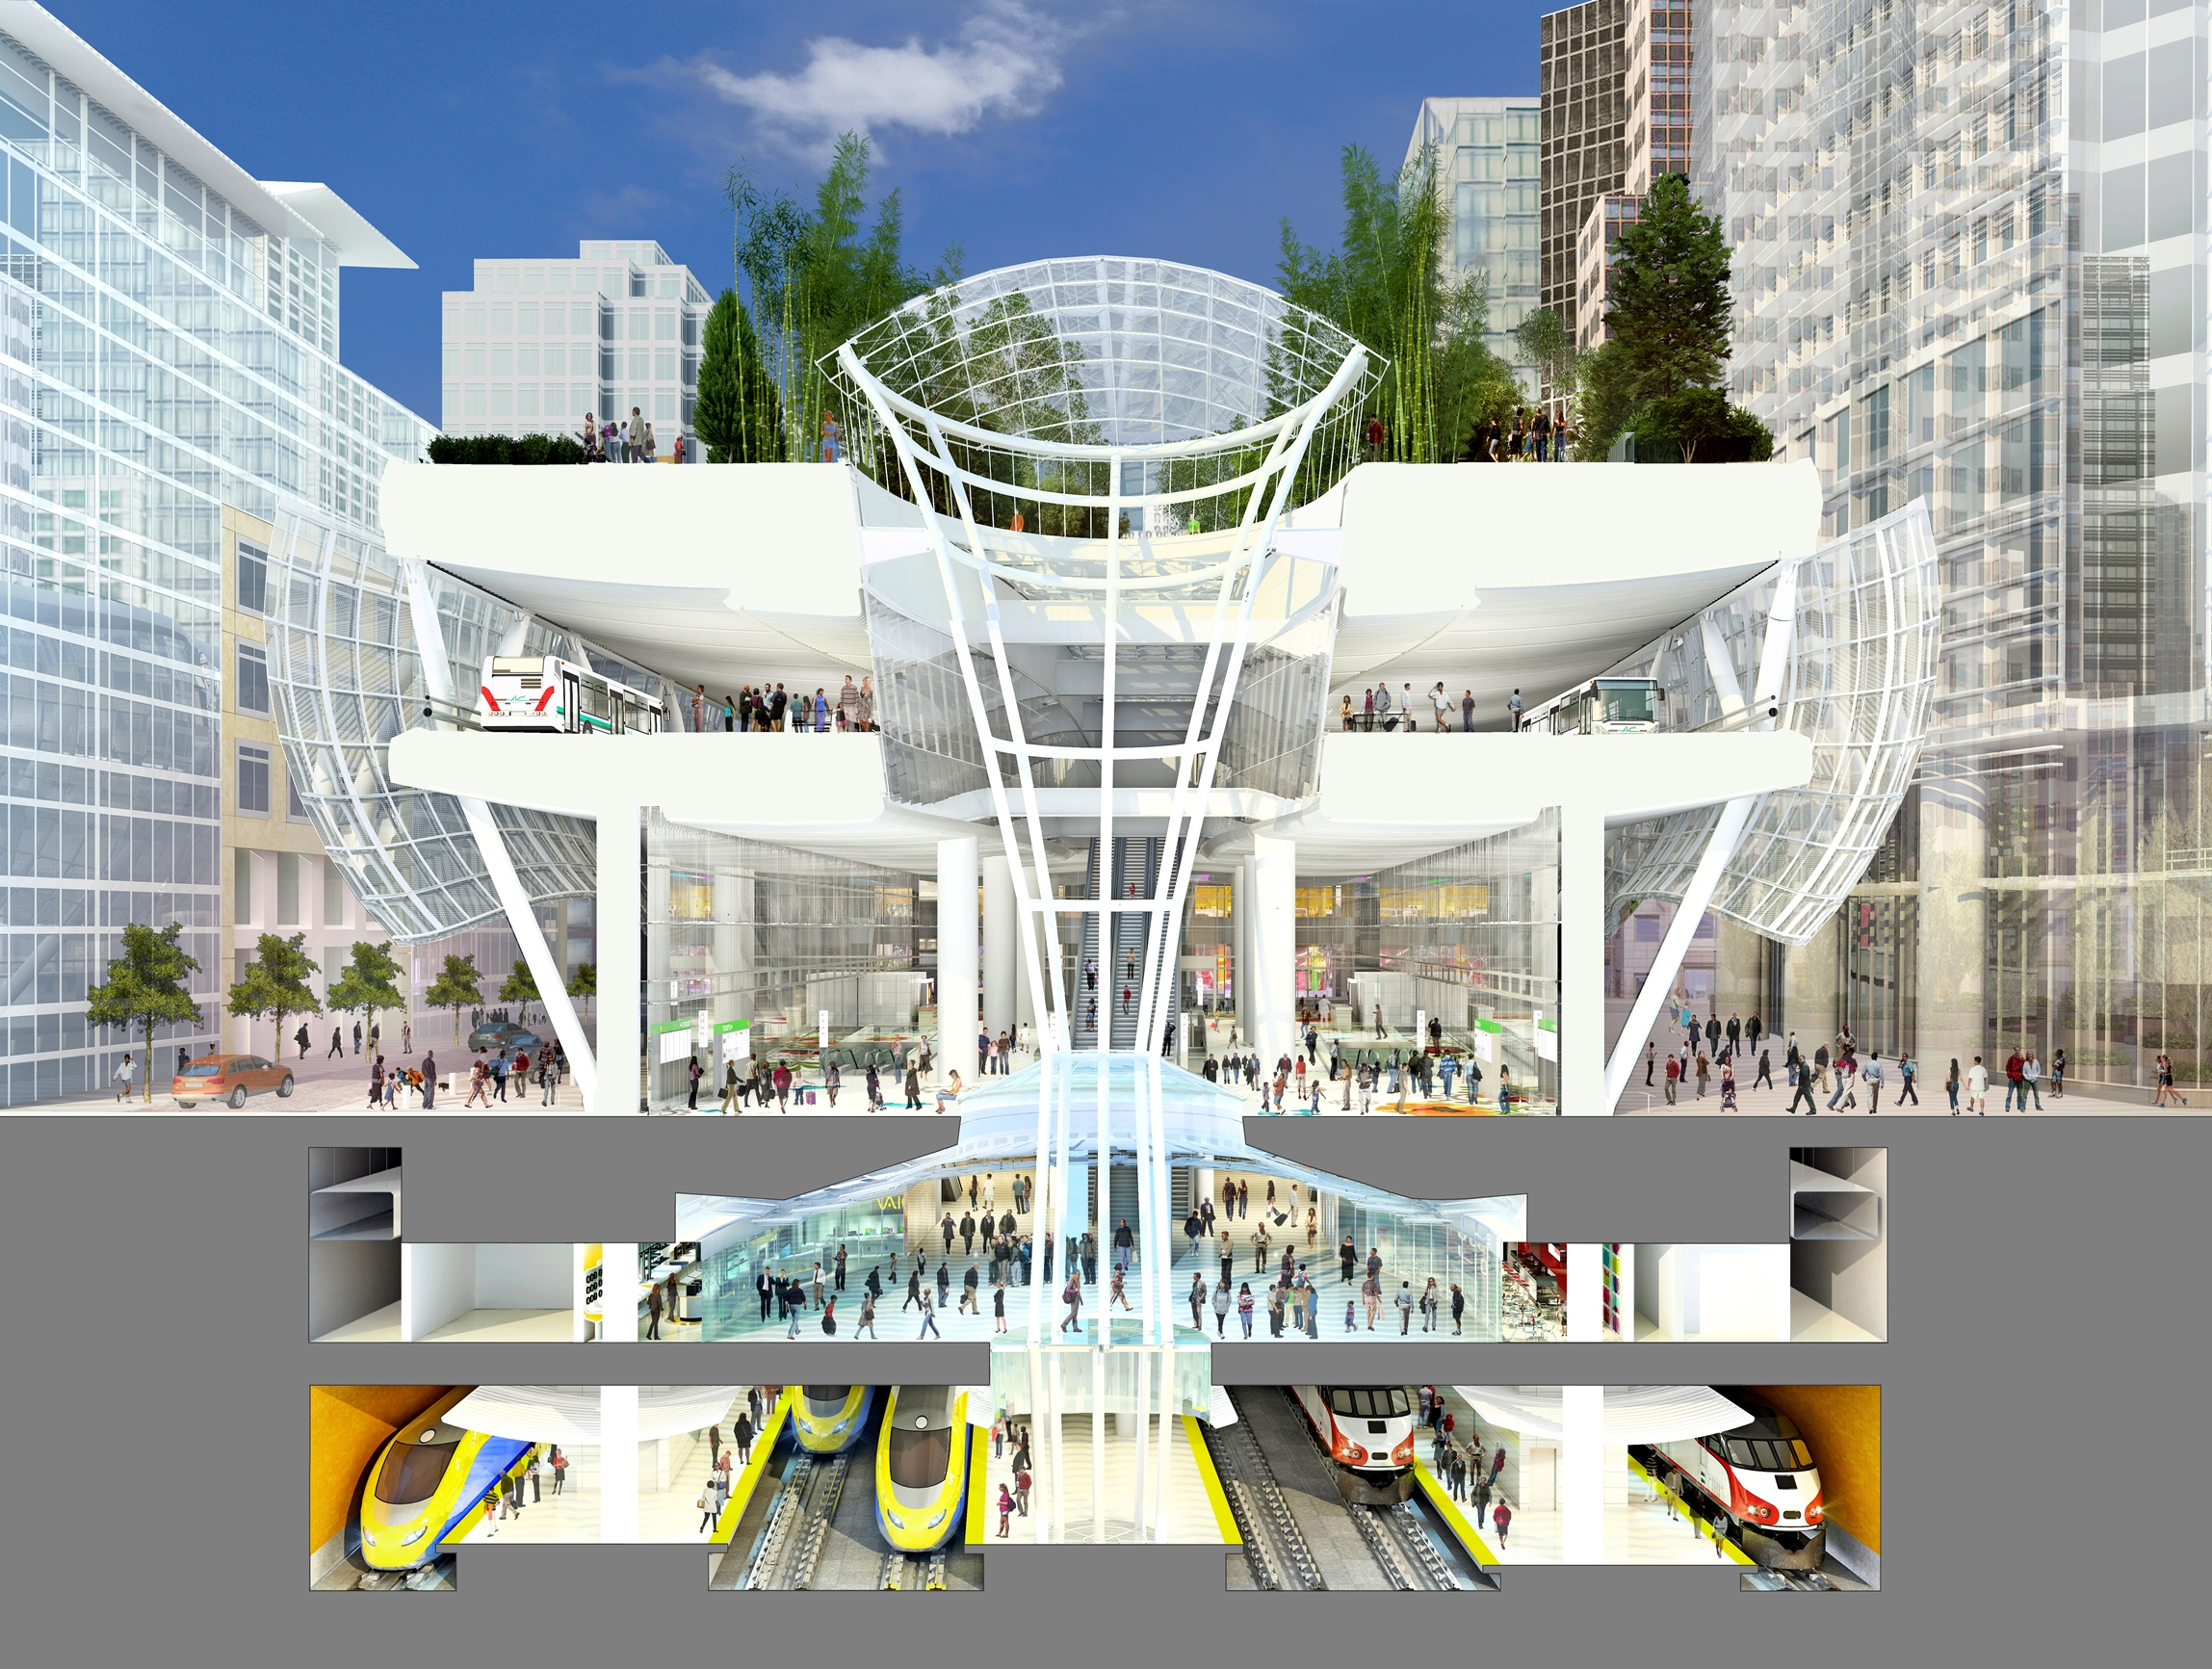 Rendering of the Transbay Transit Center. Image: Transbay Construction Authority